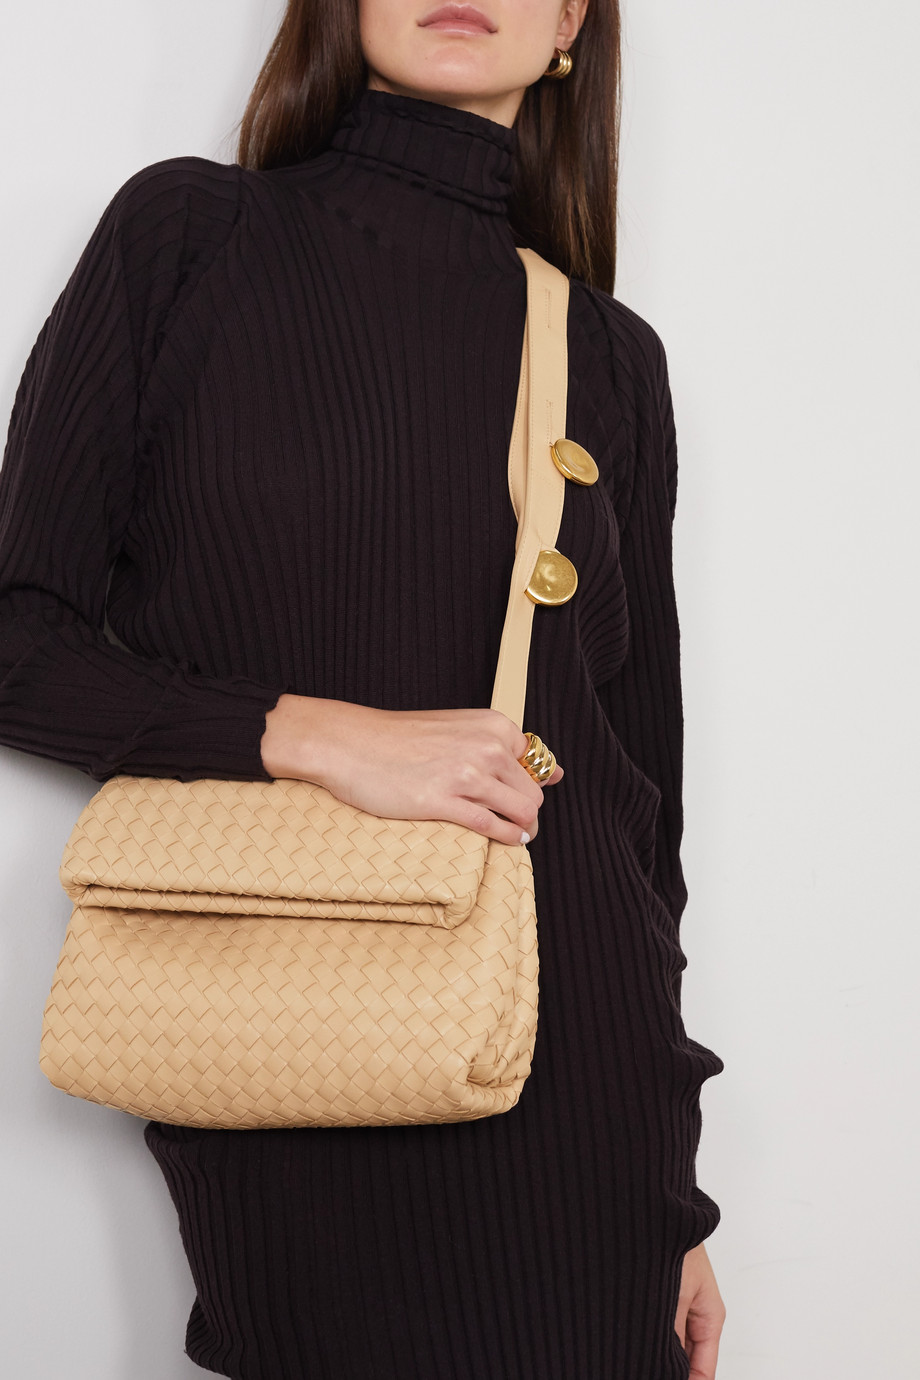 Bottega Veneta Messenger embellished intrecciato leather shoulder bag